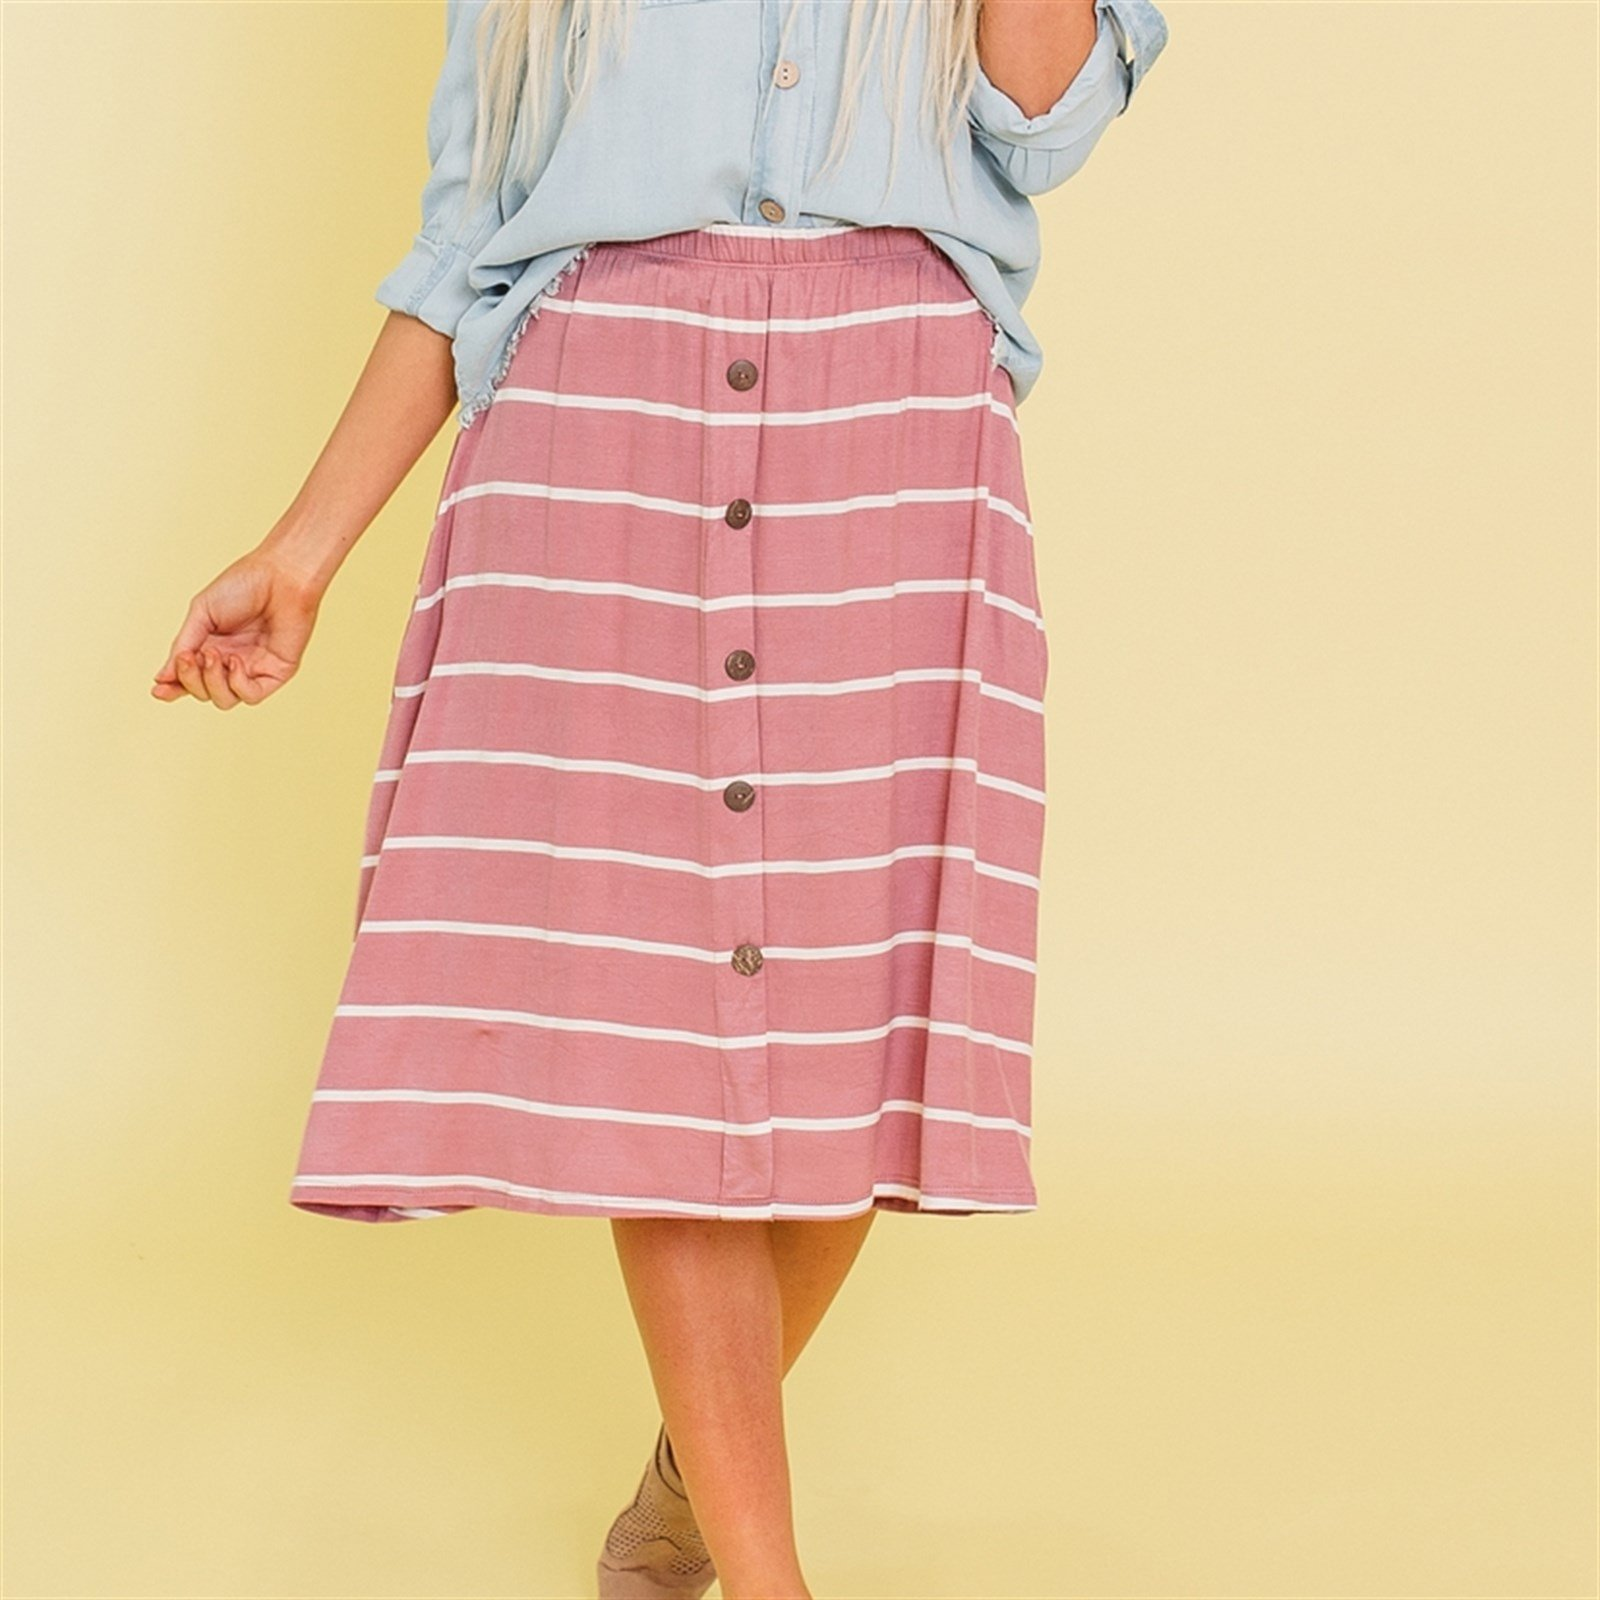 6806c8a680 Easy Button Skirts | S-3XL$19.99 | $34.95 | 43% off